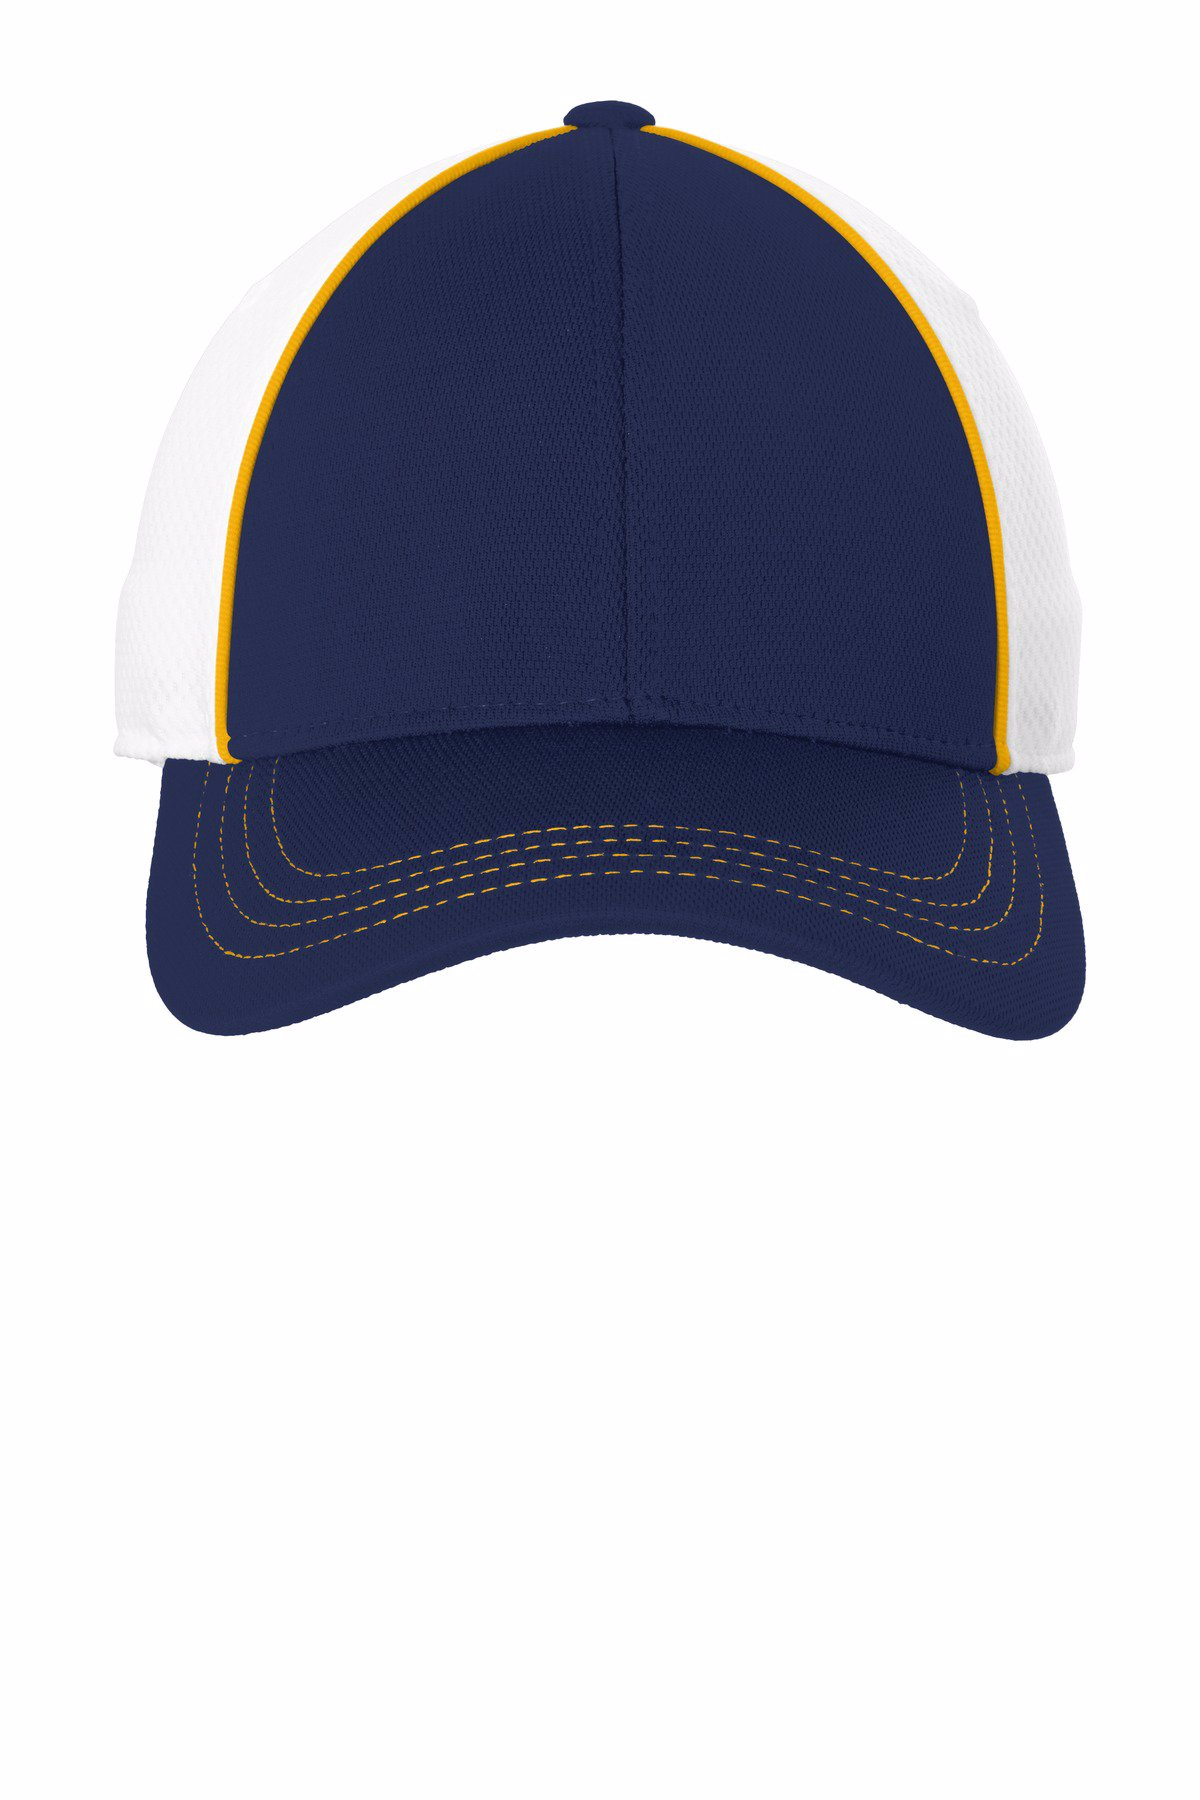 Gold/ True Navy/ White